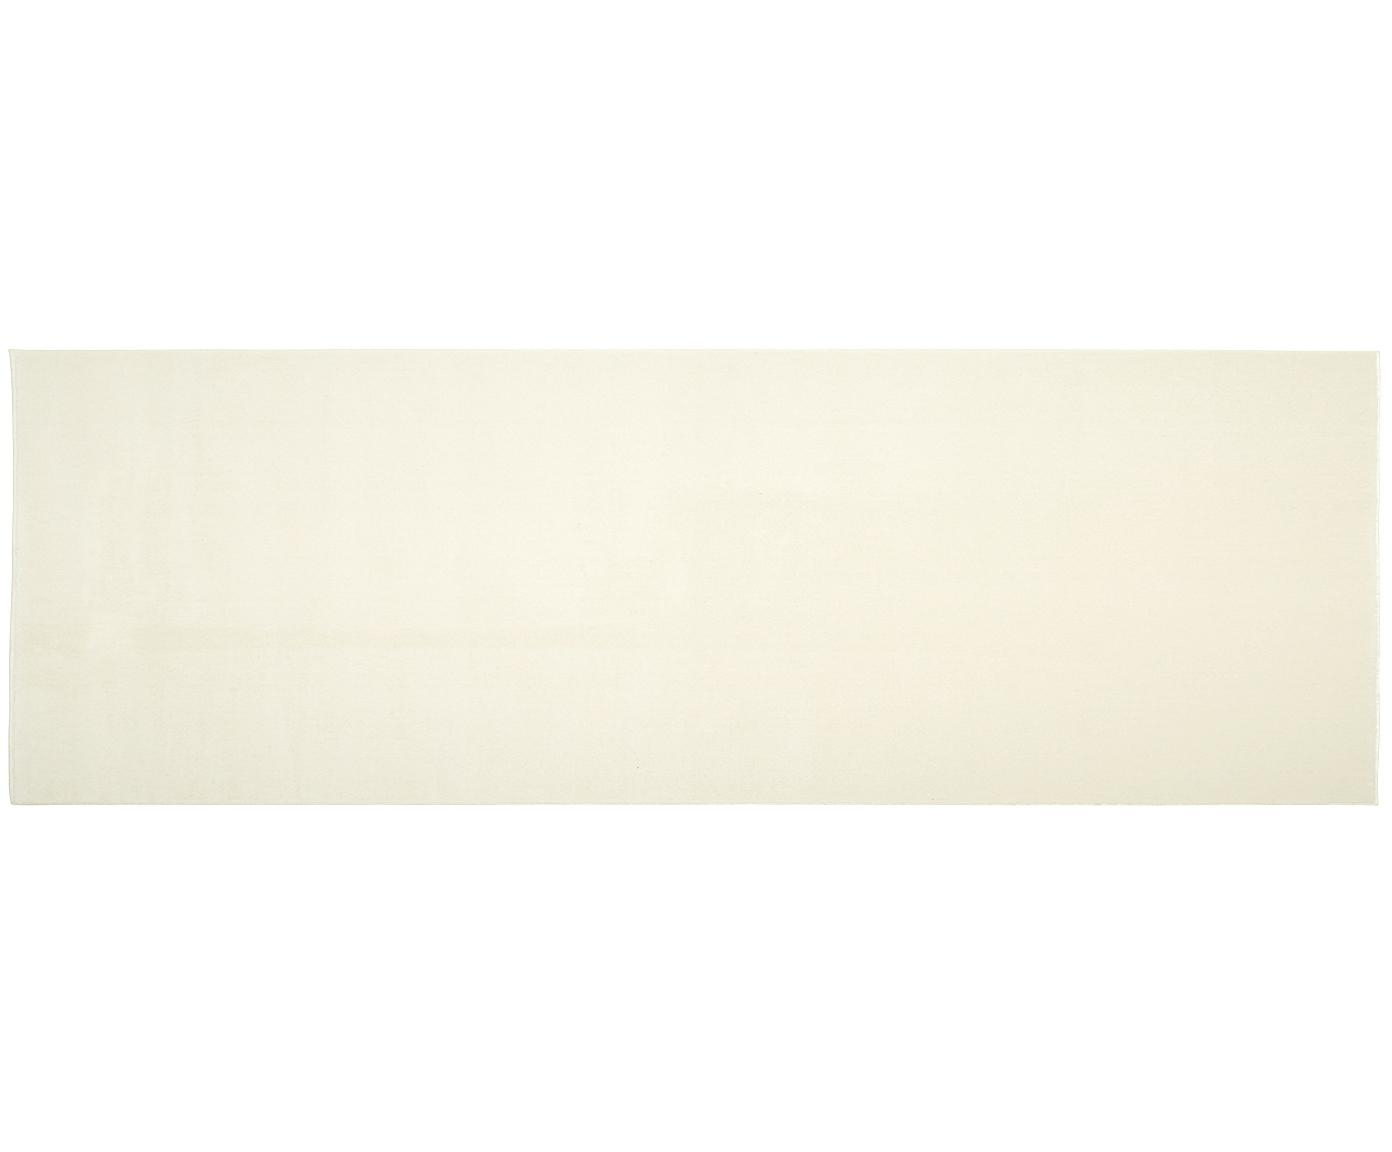 Wollläufer Ida in Beige, Flor: Wolle, Beige, 80 x 250 cm